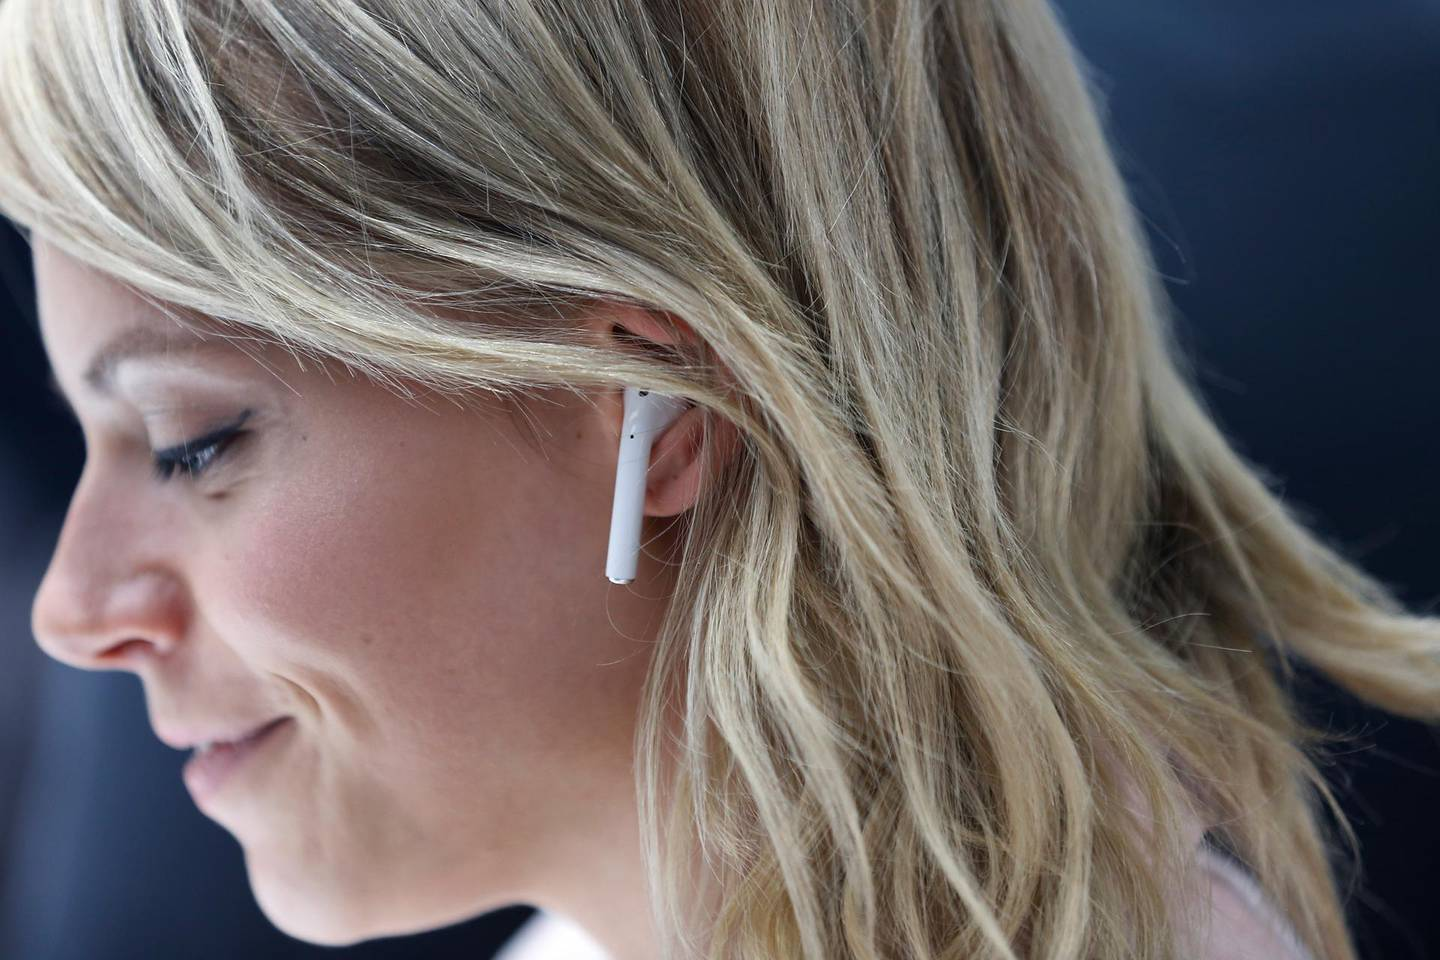 SAN FRANCISCO, CA - SEPTEMBER 07: An attendee wears an Apple AirPods during a launch event on September 7, 2016 in San Francisco, California. Apple Inc. unveiled the latest iterations of its smart phone, the iPhone 7 and 7 Plus, the Apple Watch Series 2, as well as AirPods, the tech giant's first wireless headphones.   Stephen Lam/Getty Images/AFP